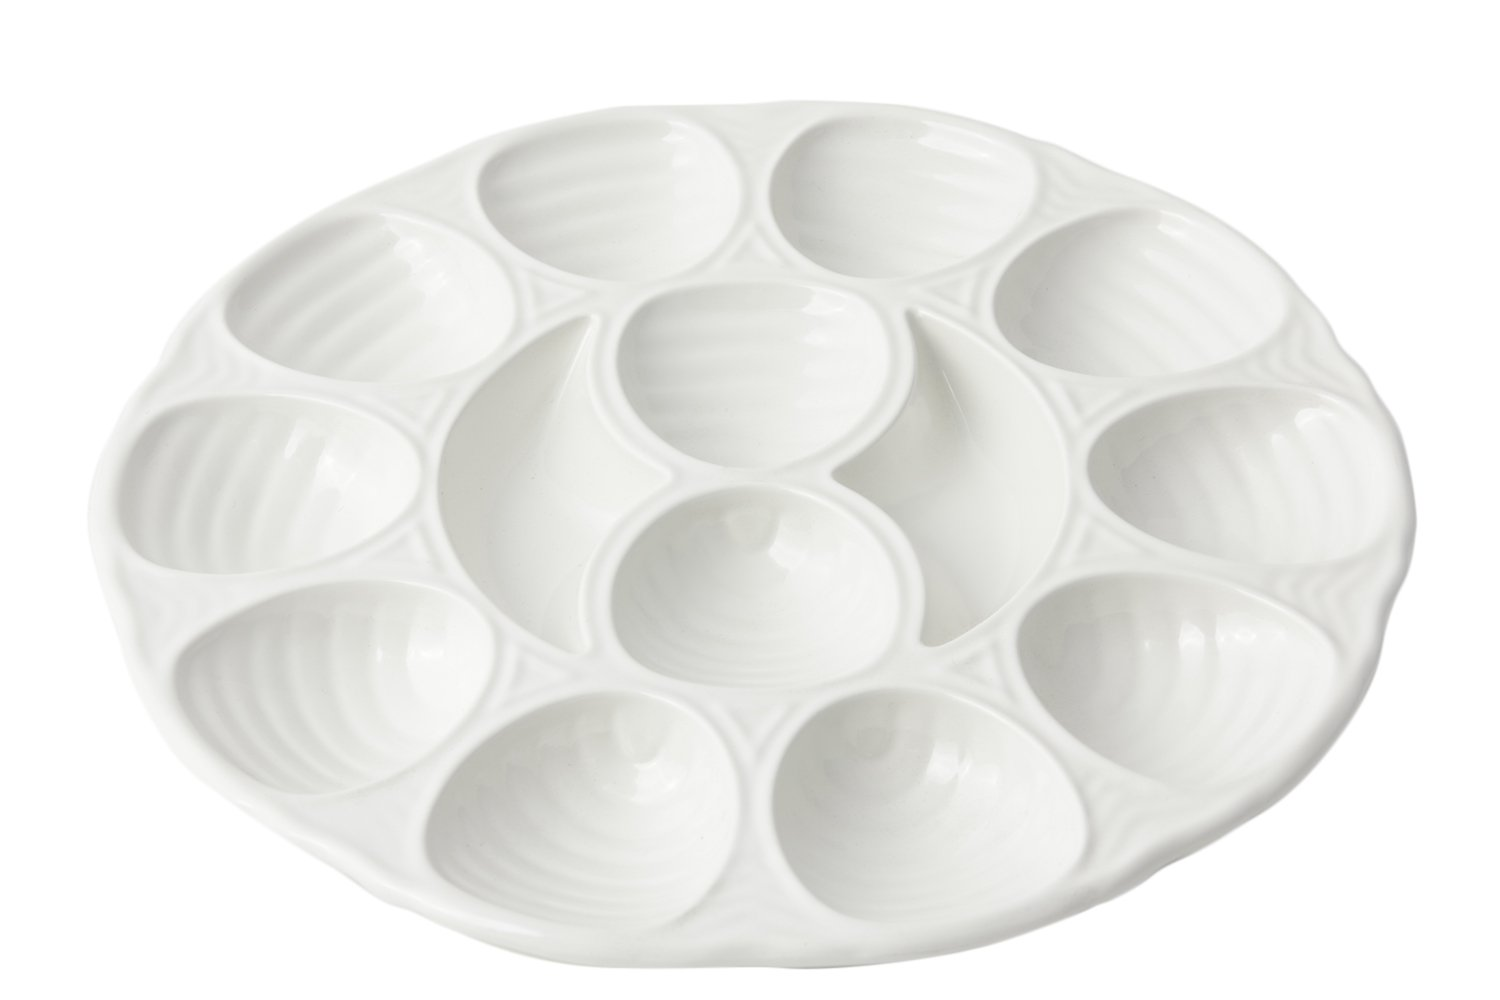 Bon Chef 5022 Aluminum 12 Hole Oyster Plate, 11-1/4'' Diameter, Sandstone White (Pack of 6)